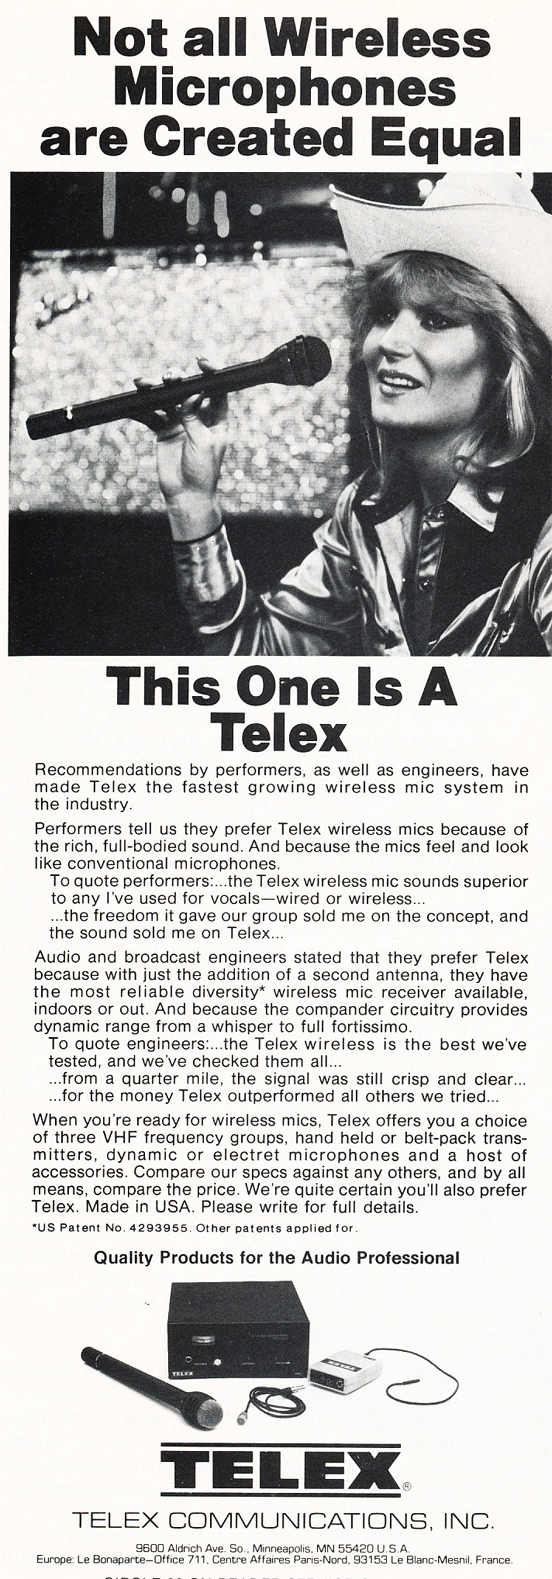 1983 ad for the Telex wireless microphone in Reel2ReelTexas.com's vintage recording collection